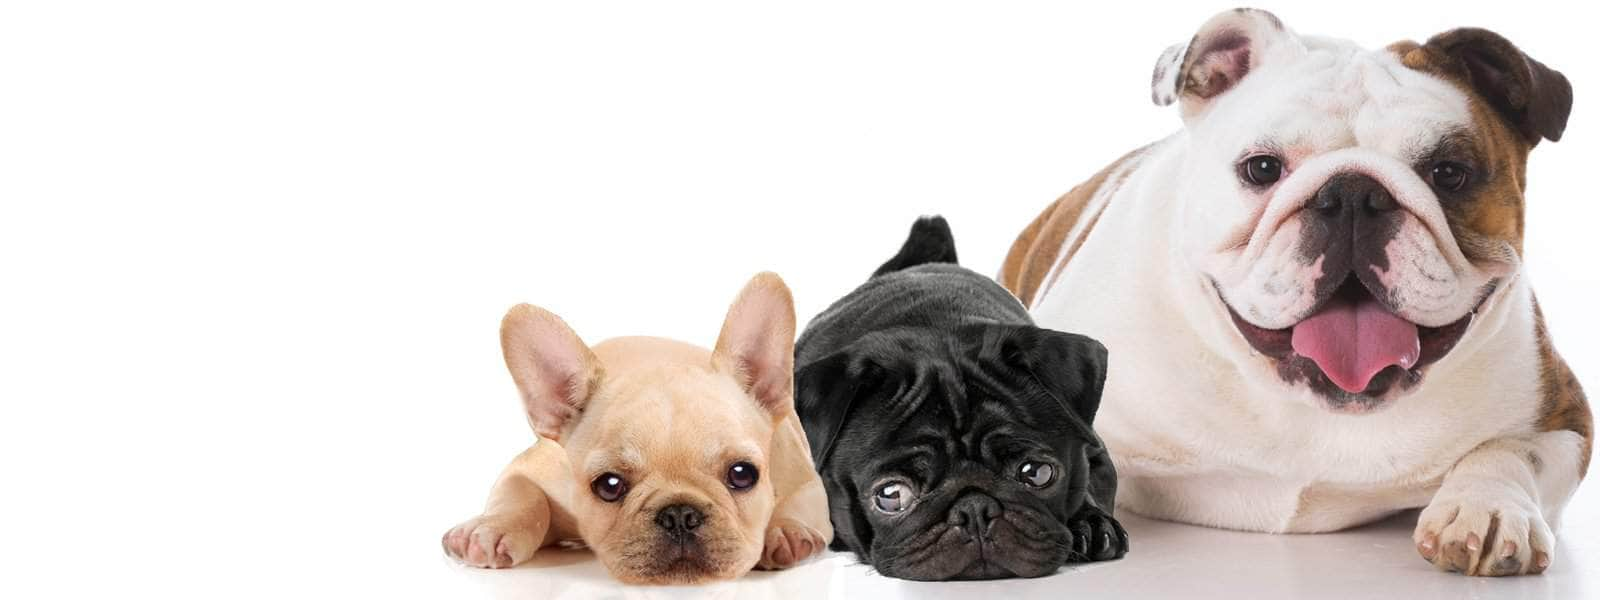 Brachycephalic syndrome…common in French Bulldogs, Pugs etc.